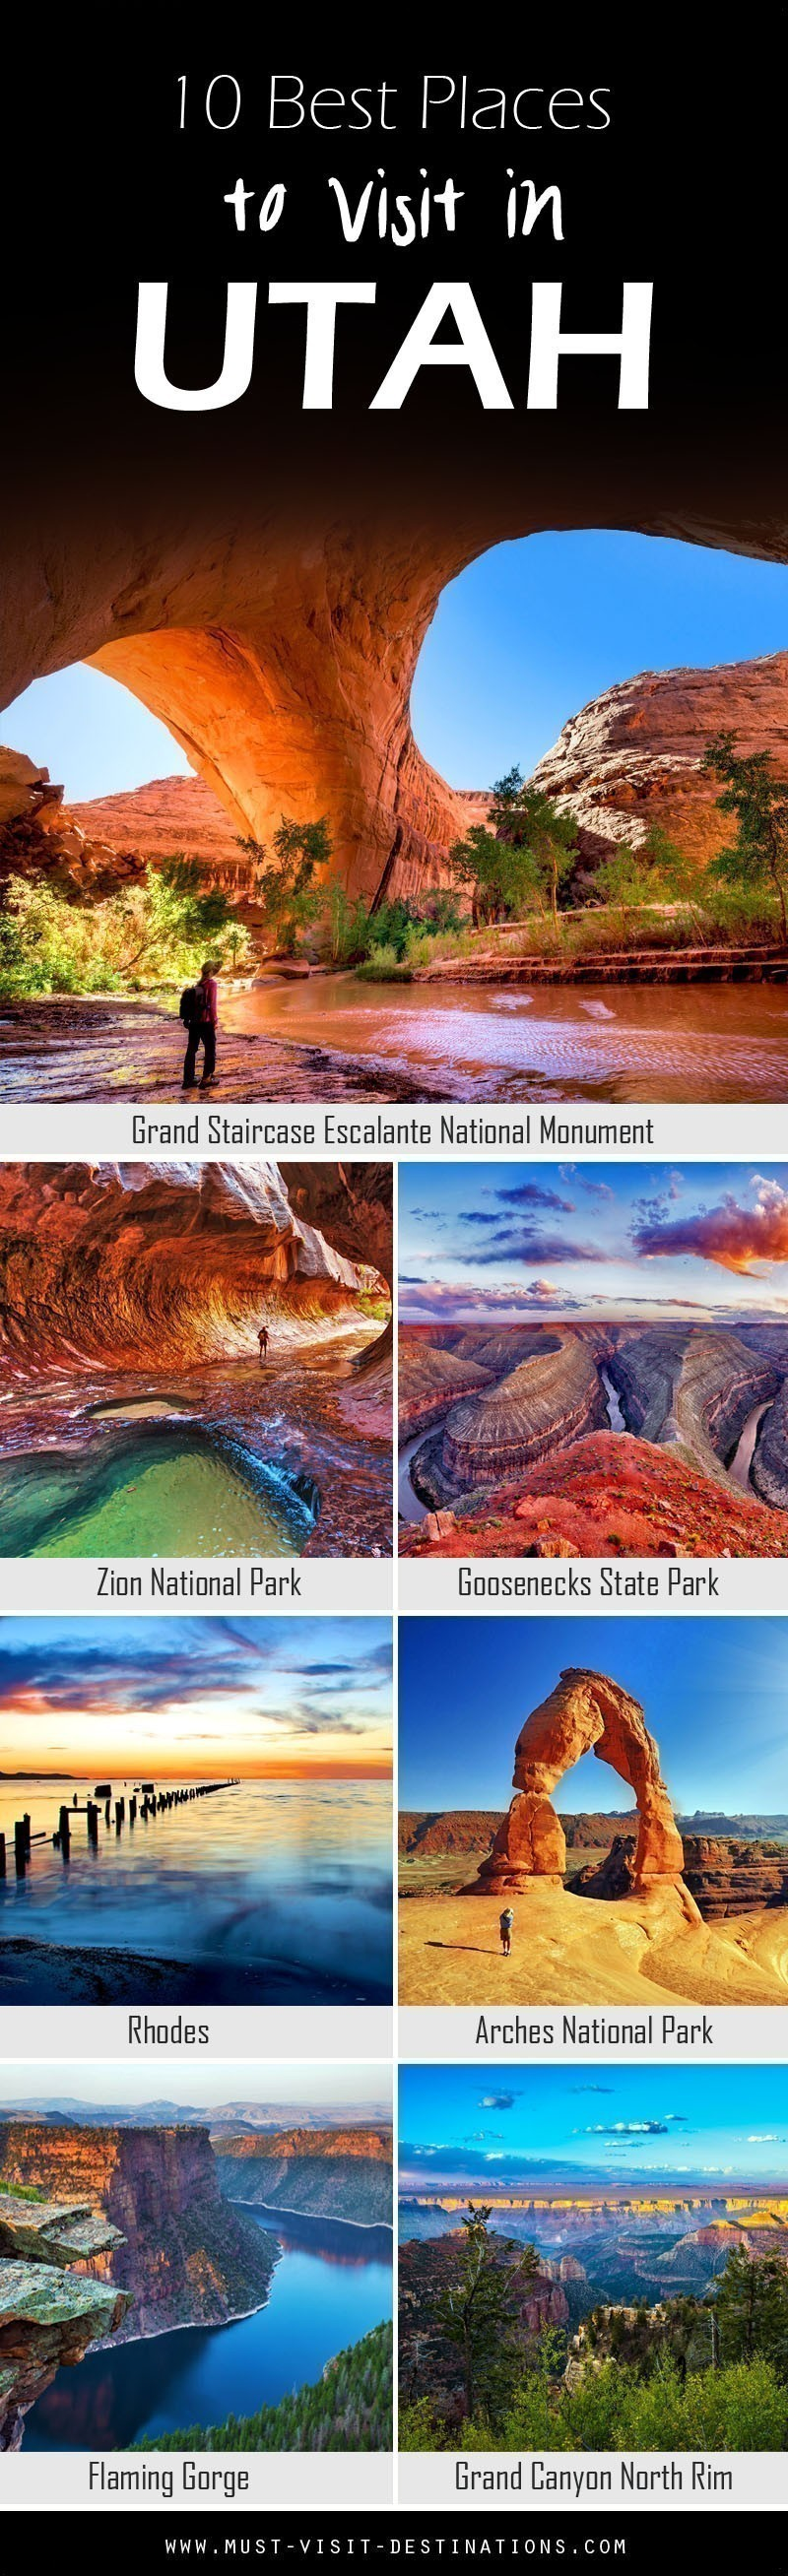 Some would argue that Utah is a state destined for nature lovers; and while there's no arguing about tastes, one thing is certain: it does have jaw-dropping, natural attractions by the bucket loads.  Here are 10 Best Places To Visit In Utah #travel